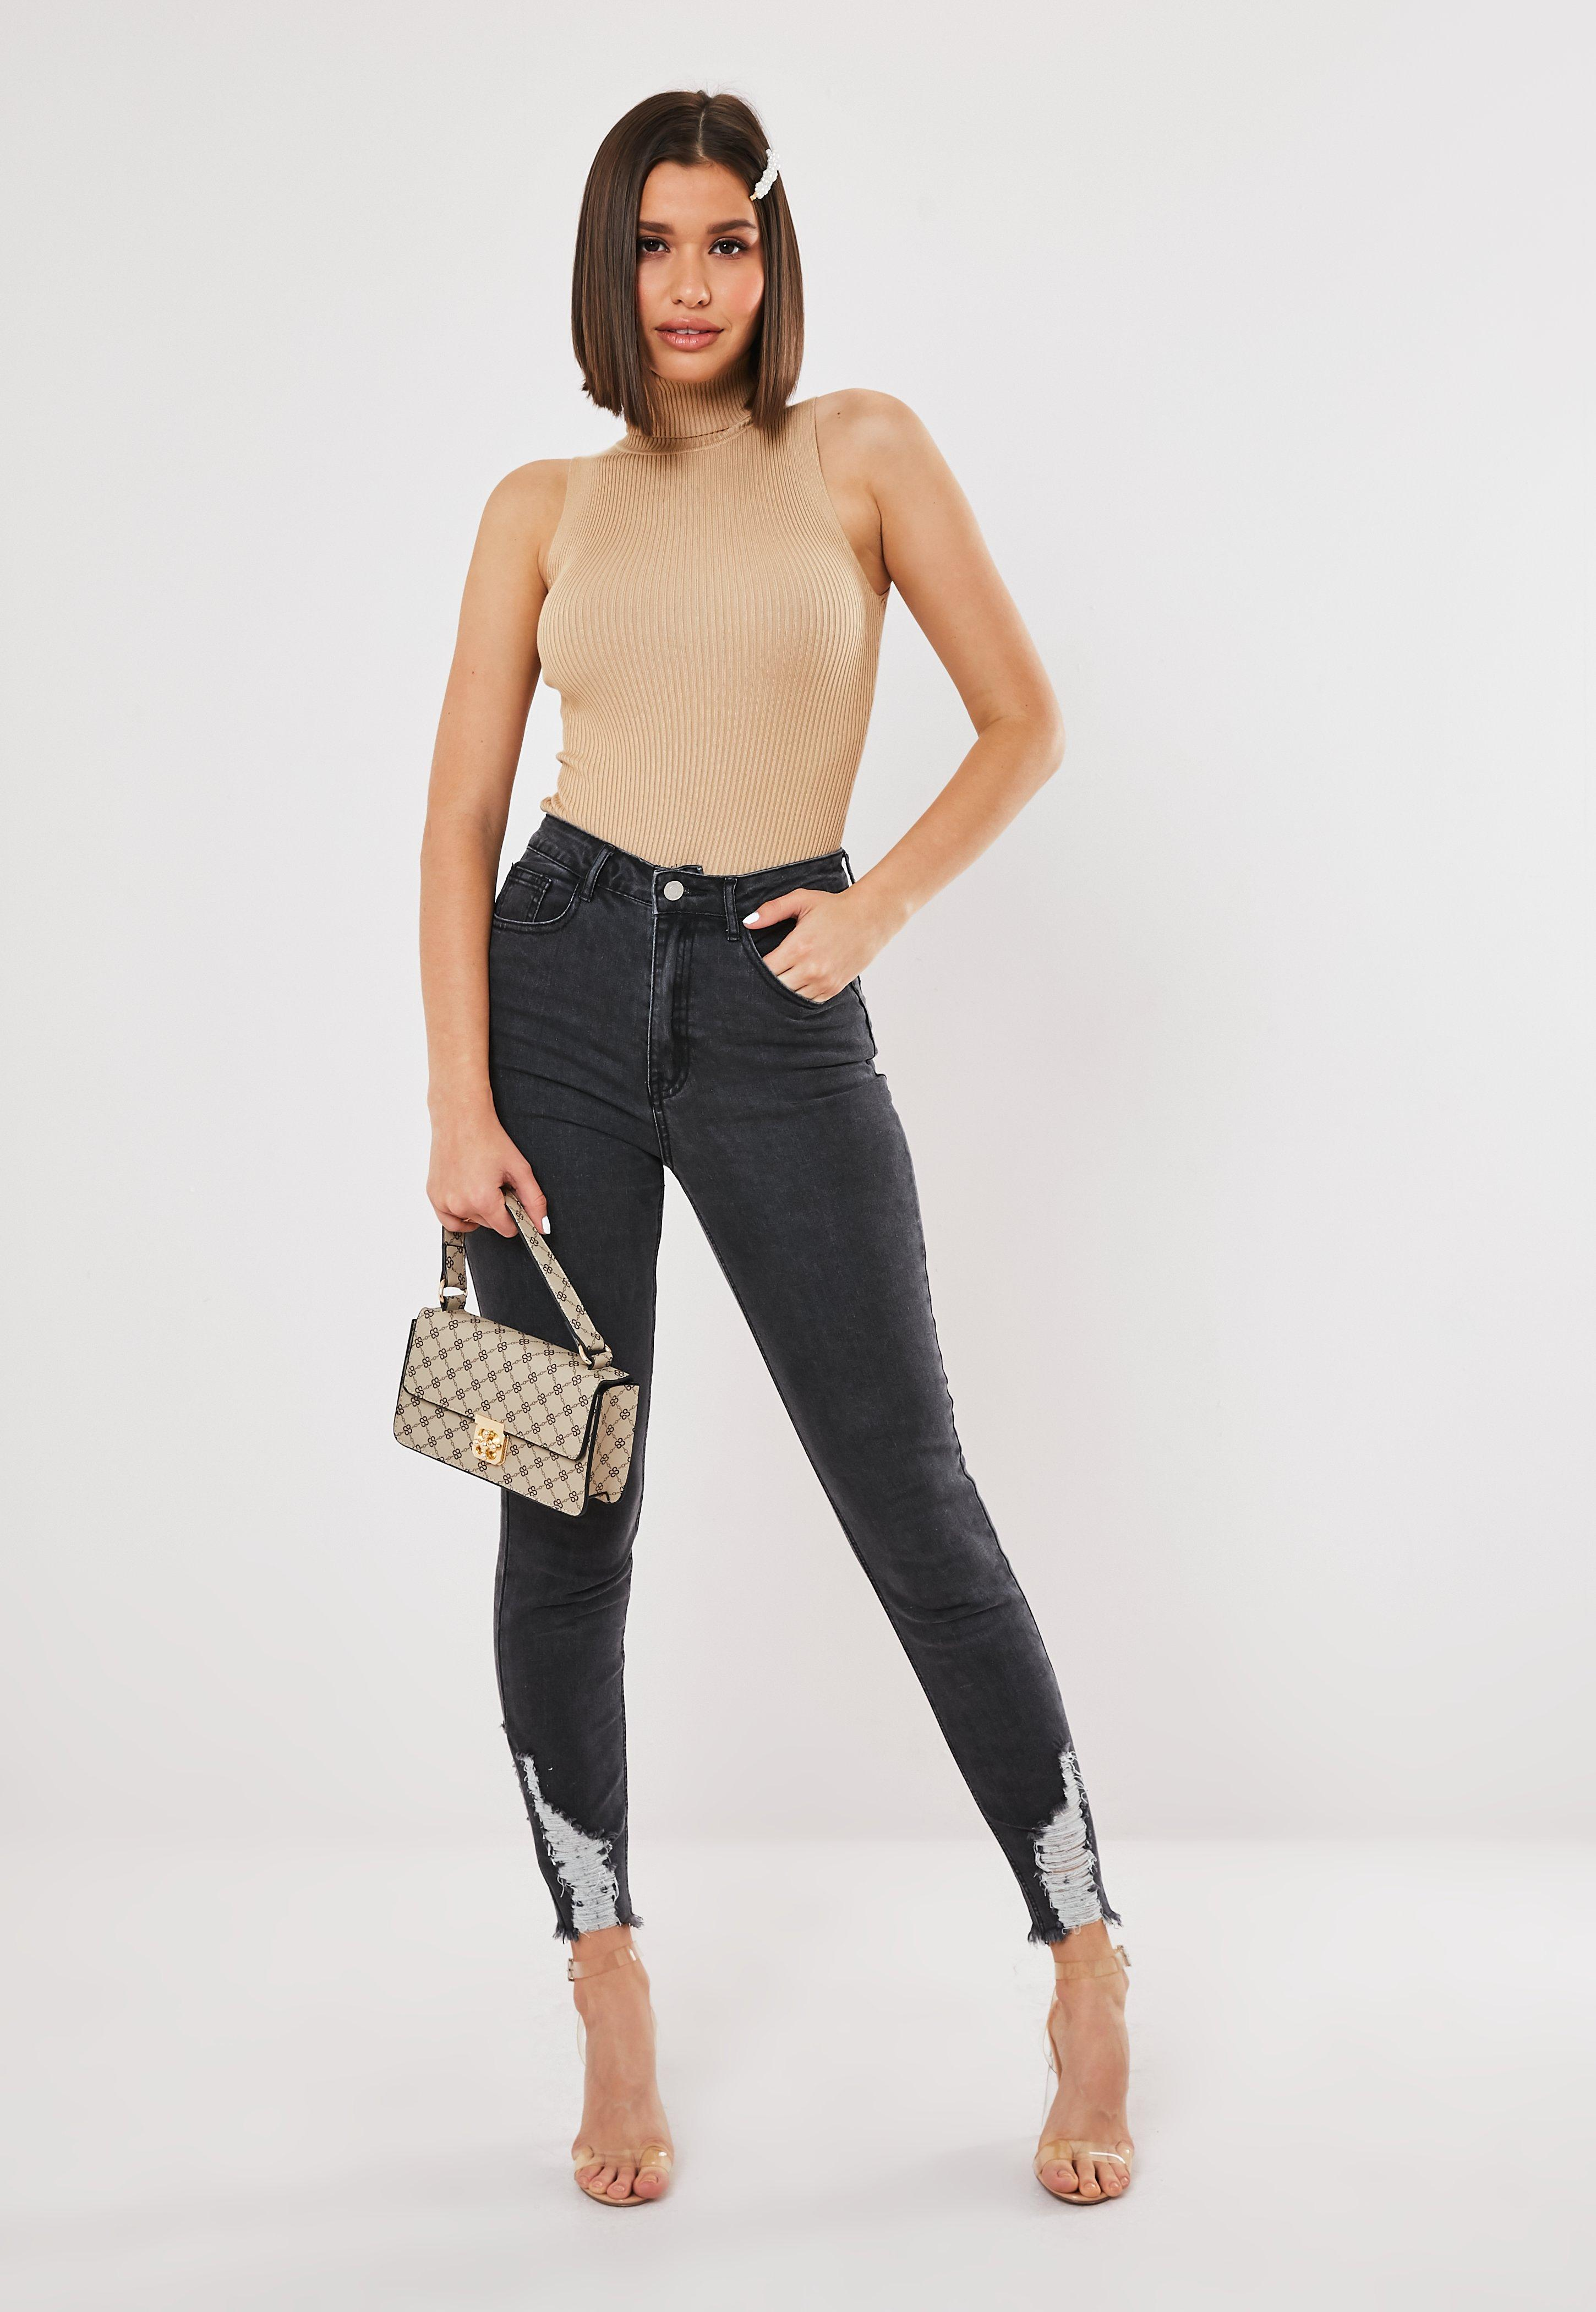 7a4c98511e254 High Waisted Jeans | High Rise Jeans - Missguided